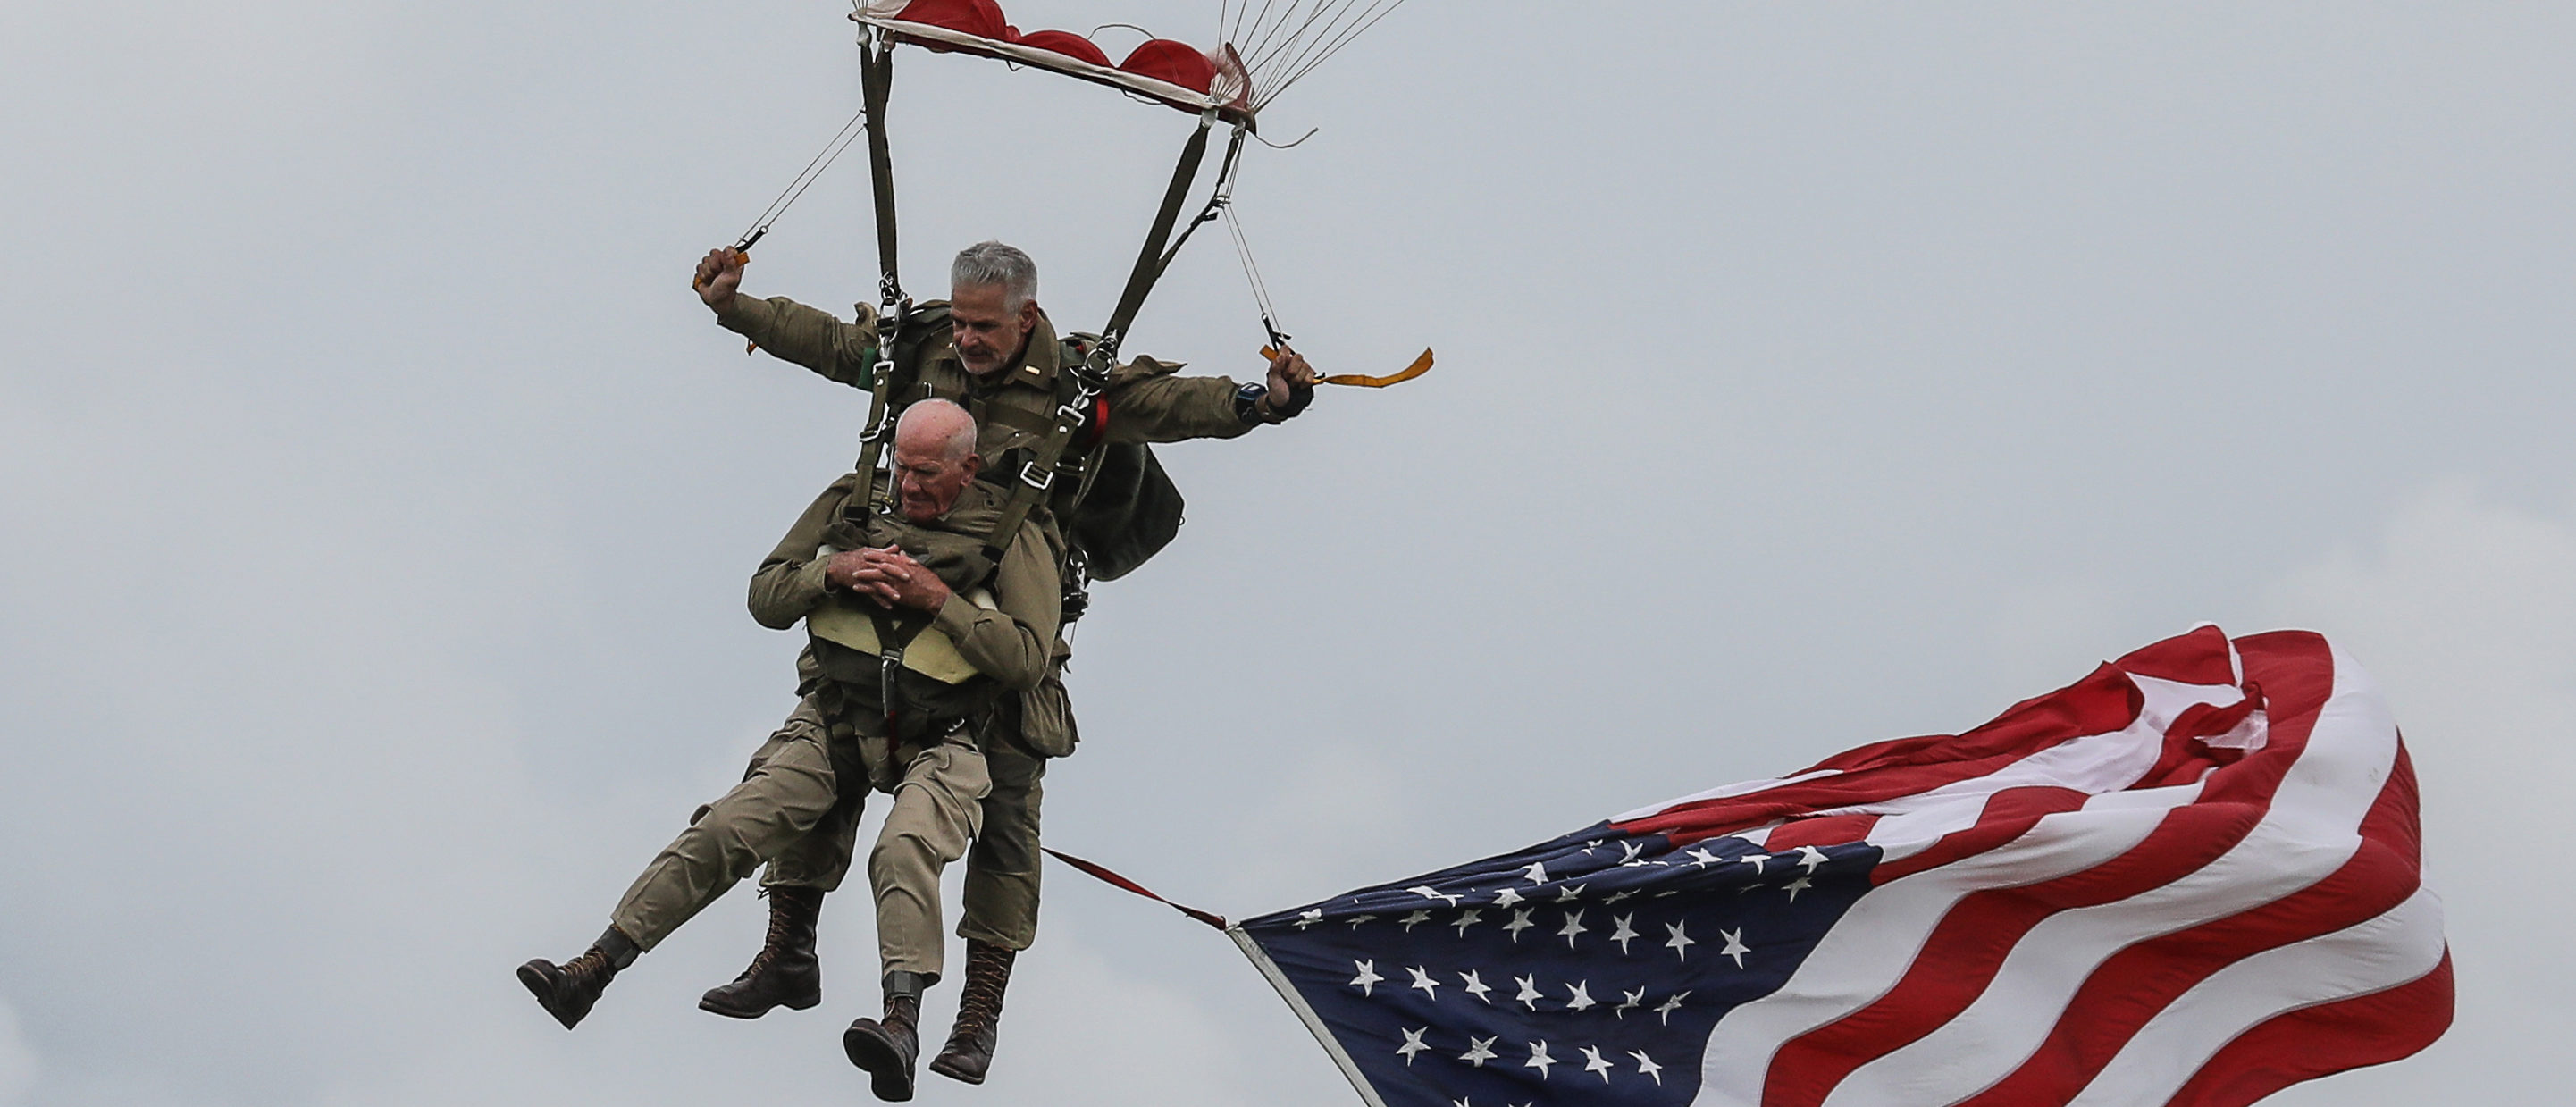 Veterans Parachute Into Normandy 75 Years After Storming the Beaches on D-Day